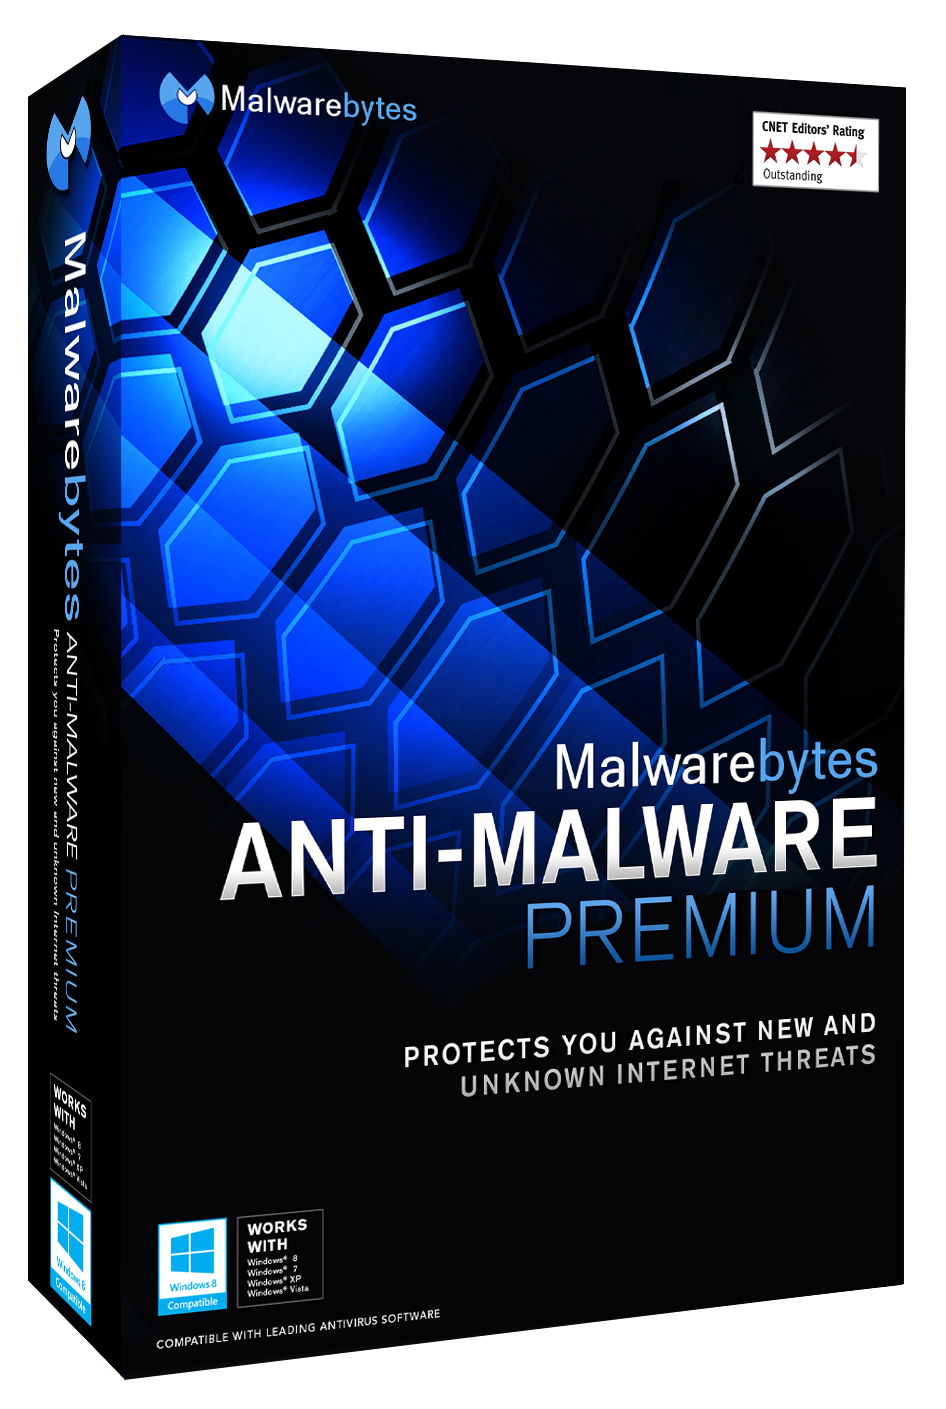 Malwarebytes Anti-Malware Premium 2 years/1-10 Devices